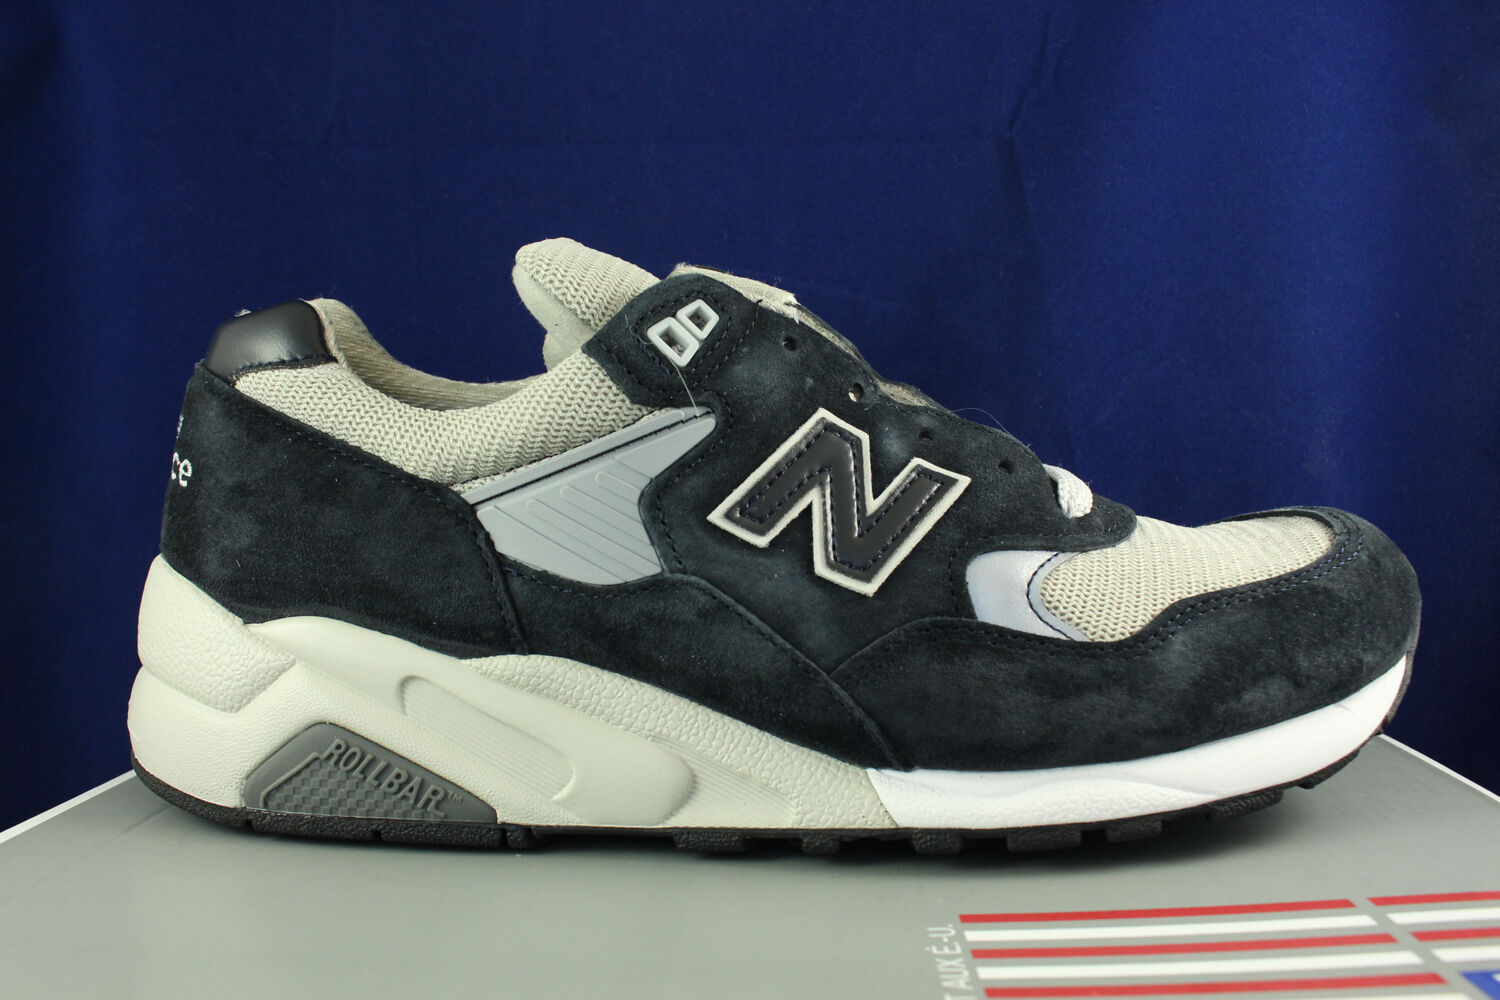 NEW BALANCE 585 BRINGBACK MADE IN USA NAVY GREY BLUE BLUE GREY M585BG SZ 8 a6dec9